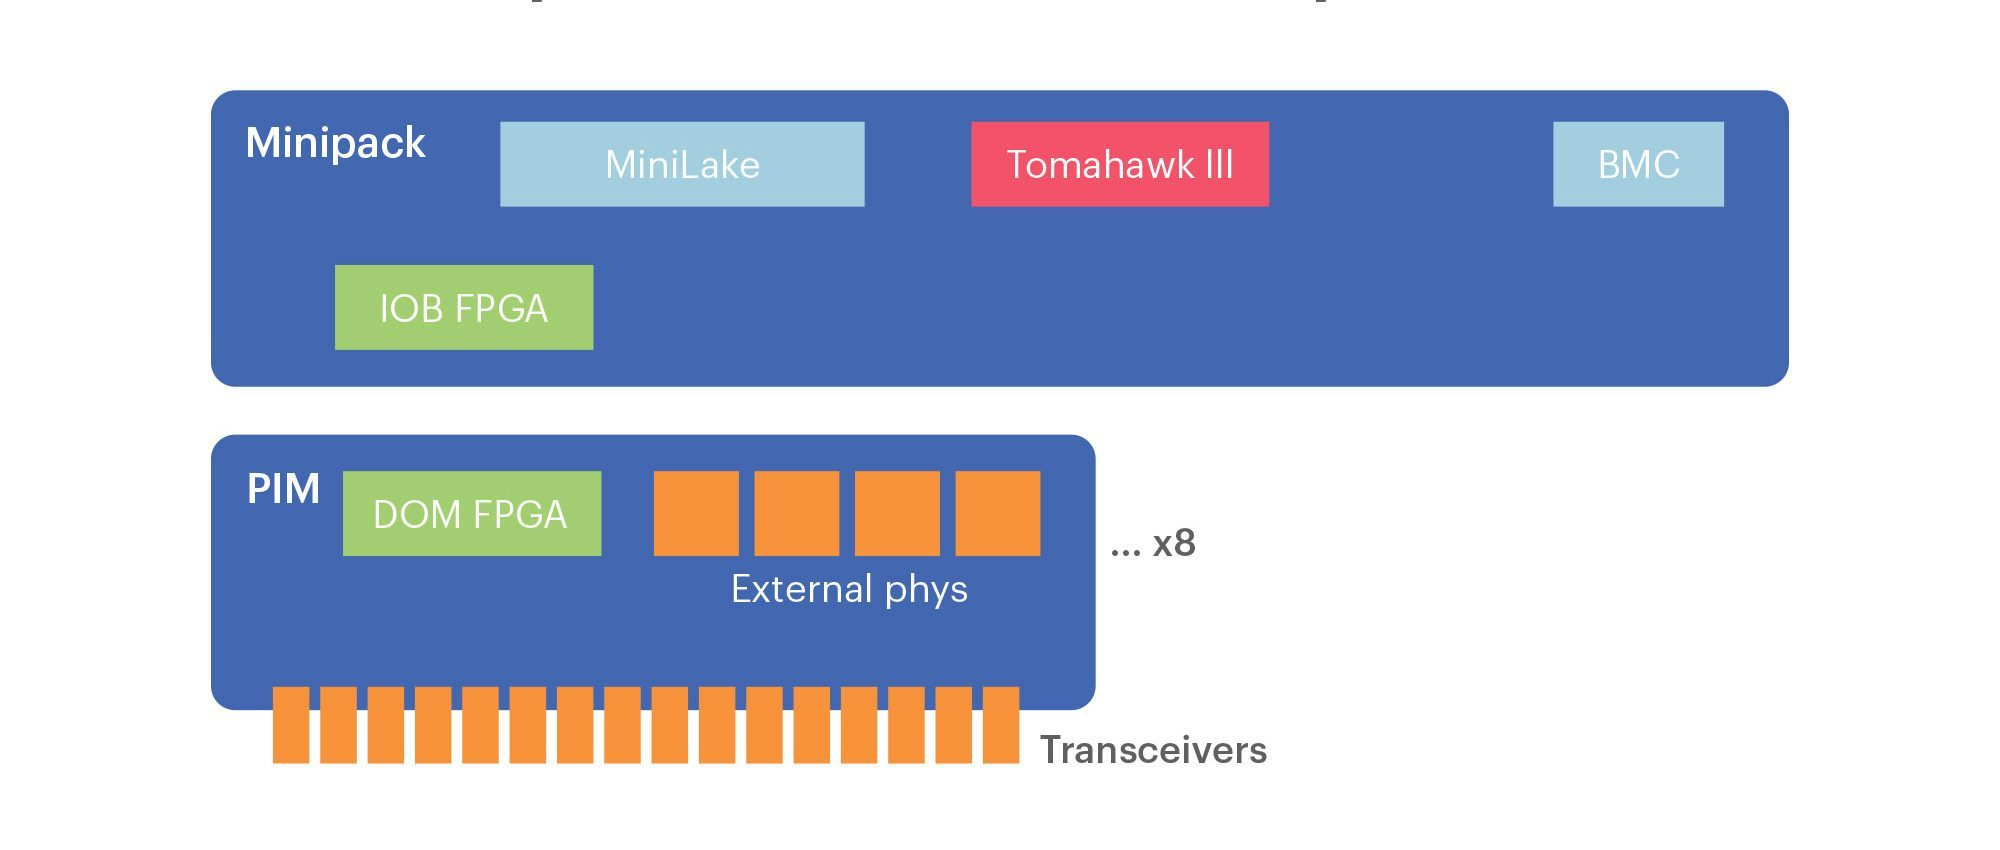 Minipack hardware components